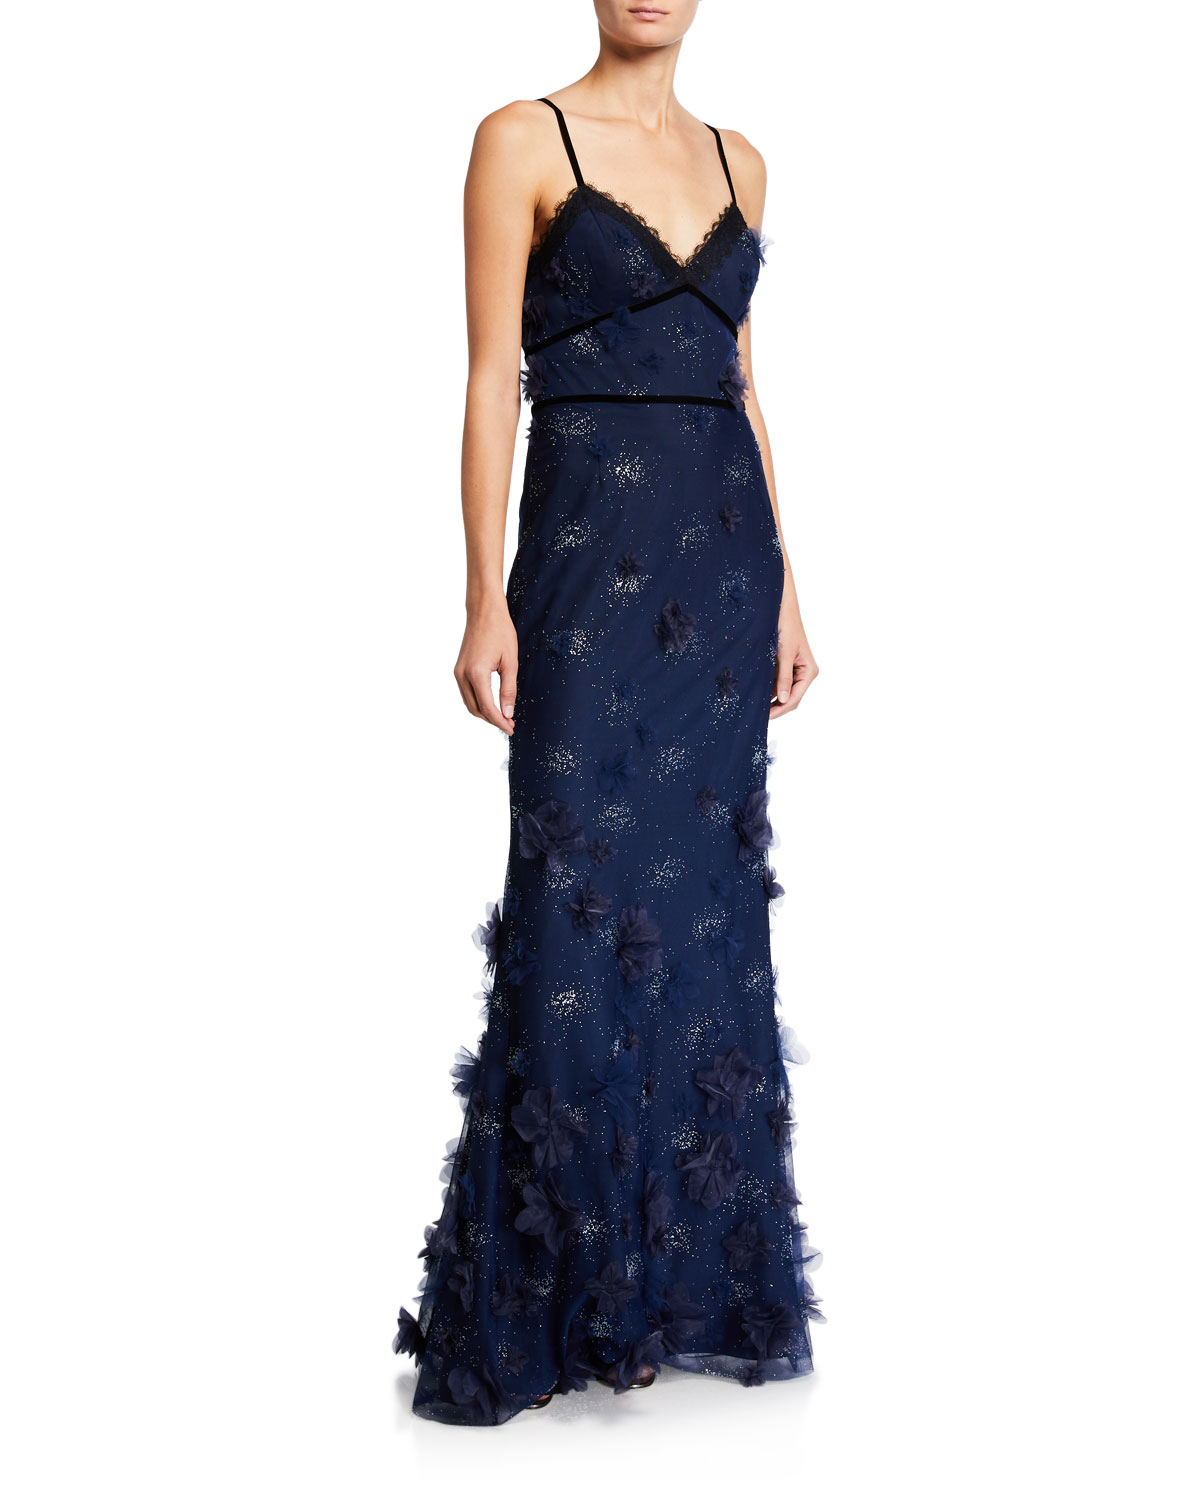 Marchesa Notte Tops METALLIC EMBROIDERED SLEEVELESS GOWN W/ 3D FLOWERS & LACE TRIM